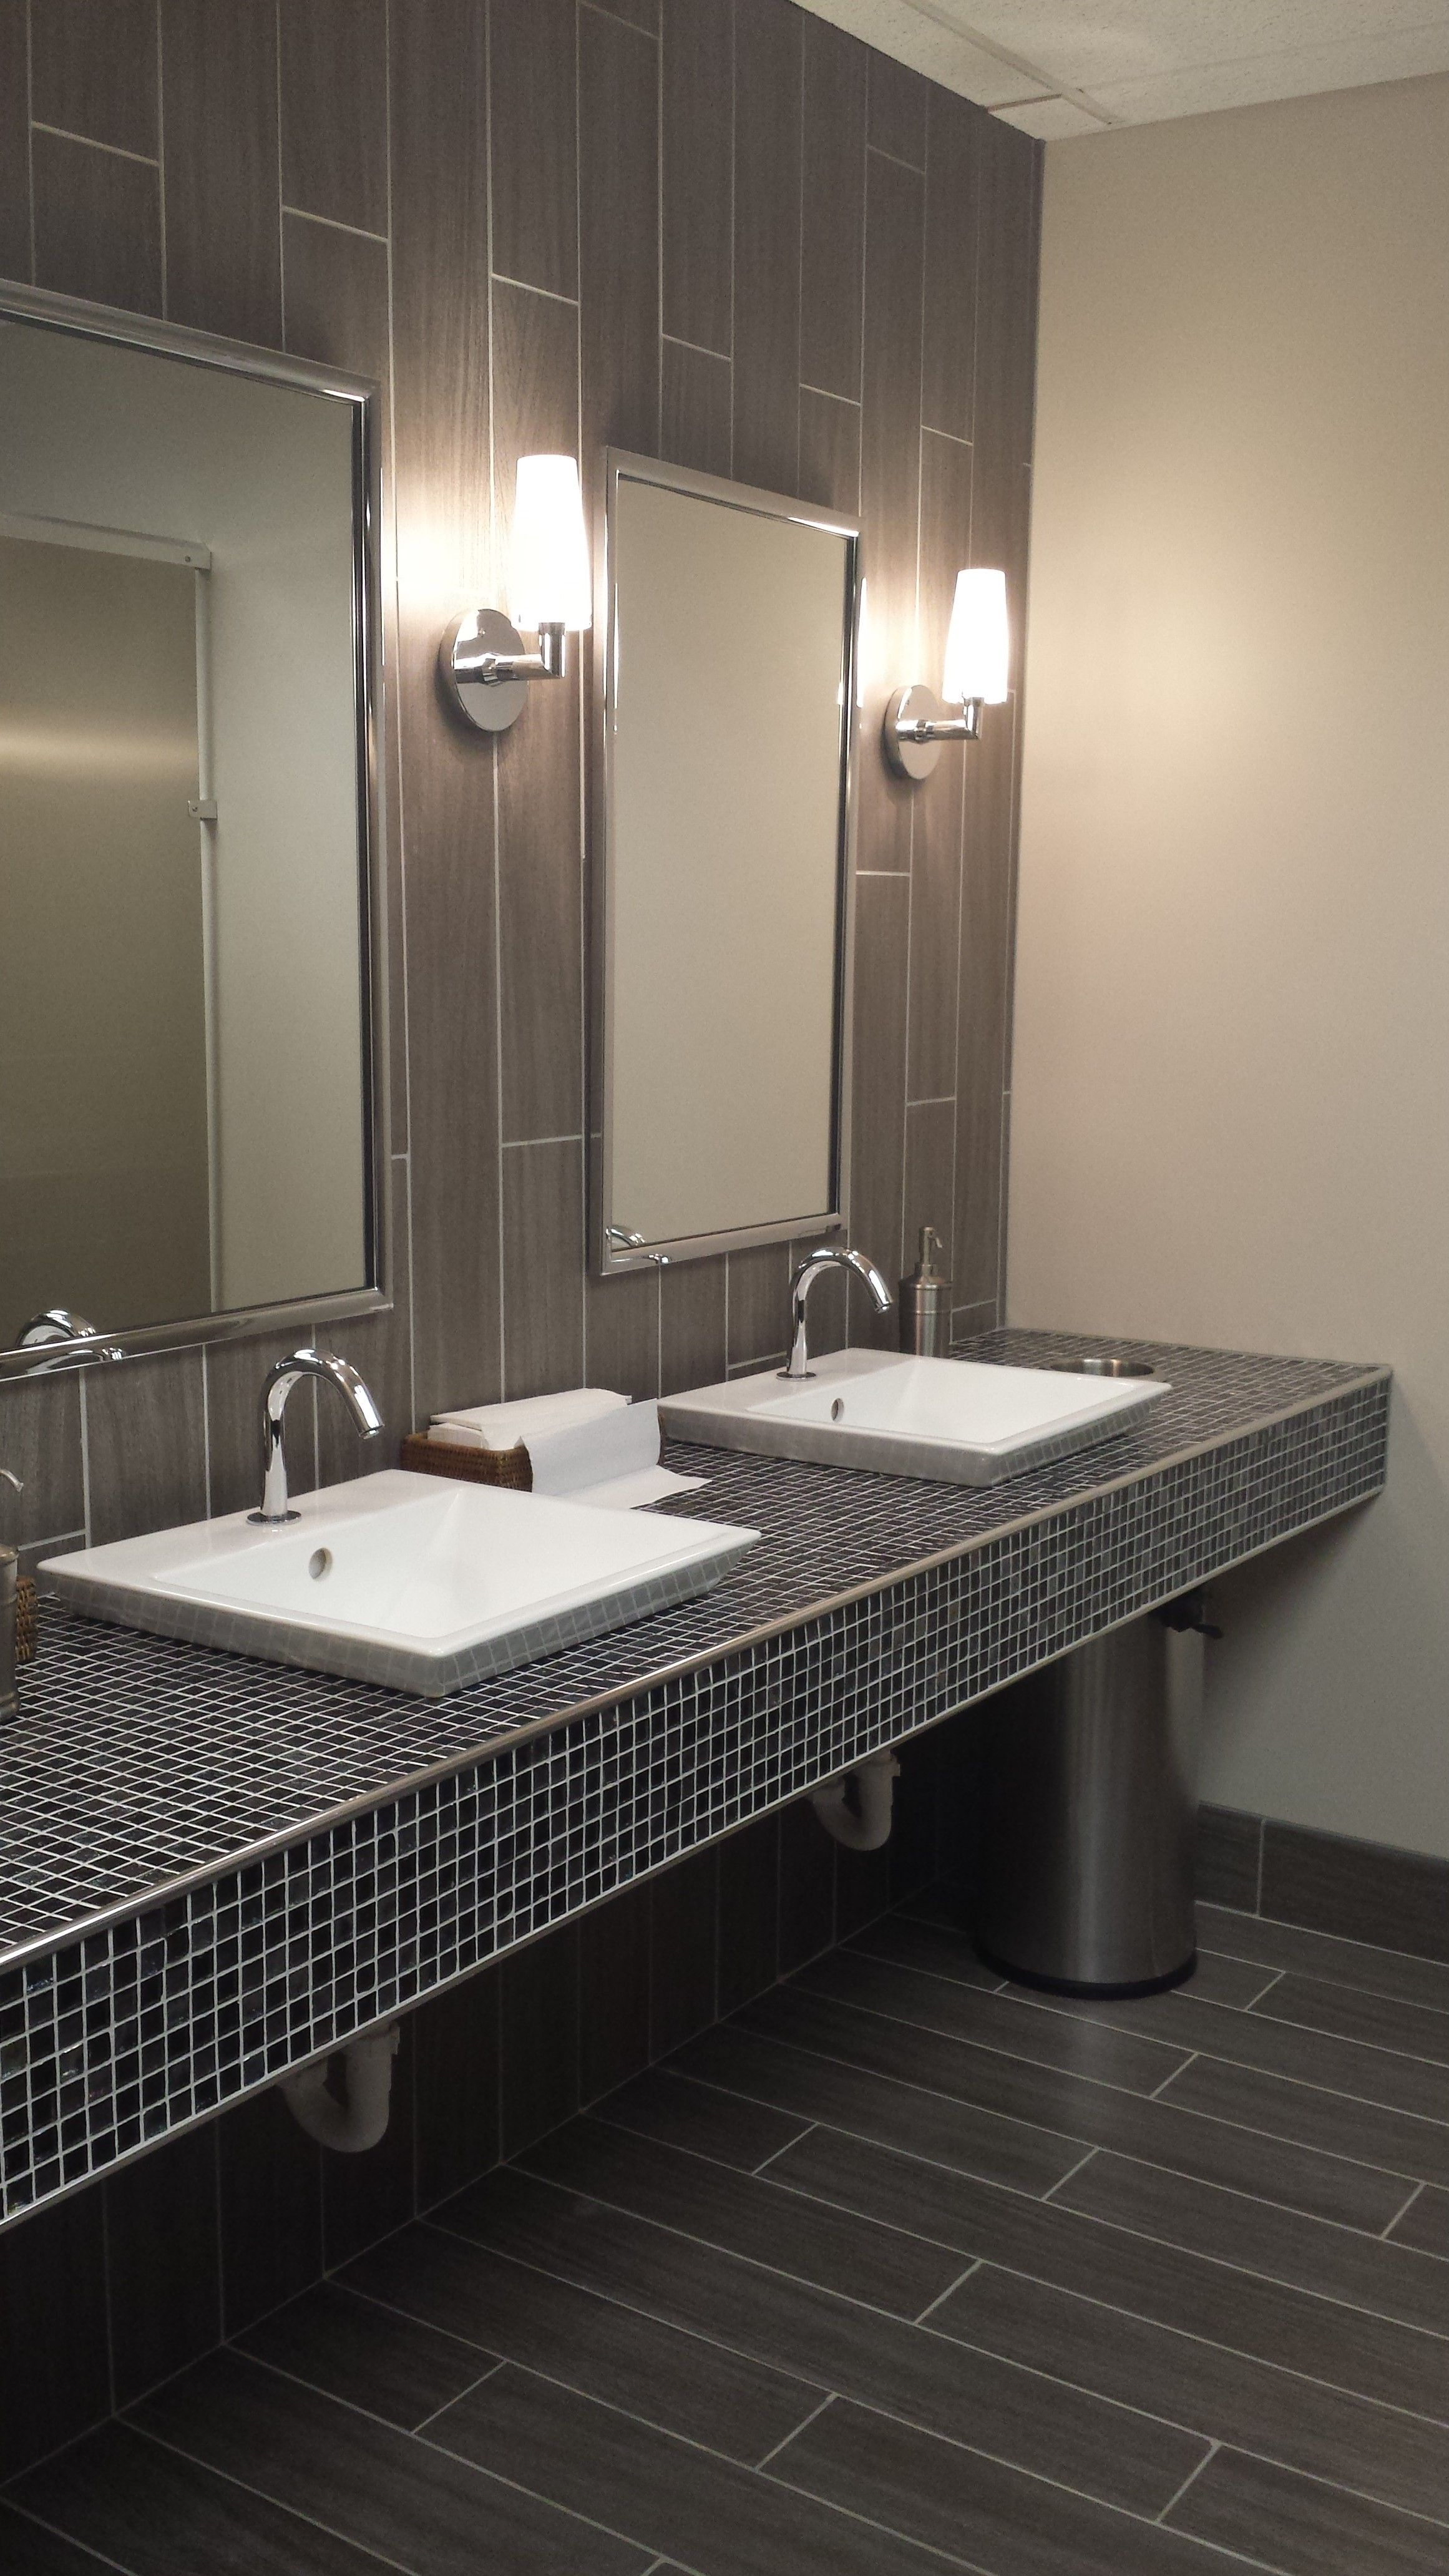 Bathroom Sink:Commercial Vanity Sink Stainless Commercial